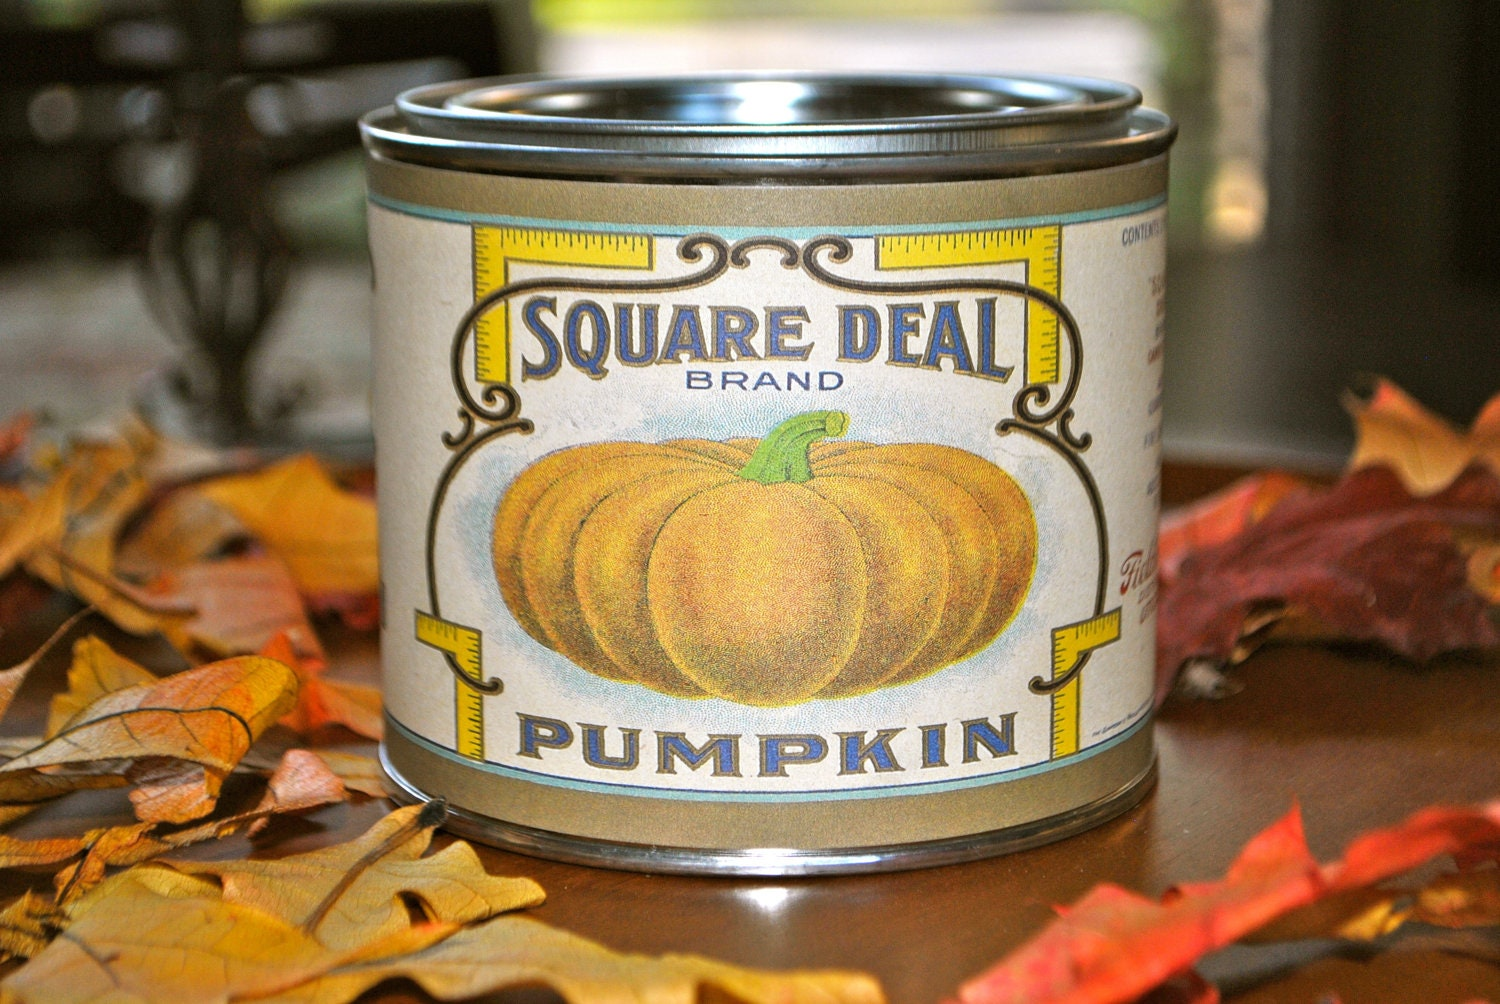 16 oz Sweet Pumpkin Spice- Square Deal by Simply Vintage Candles